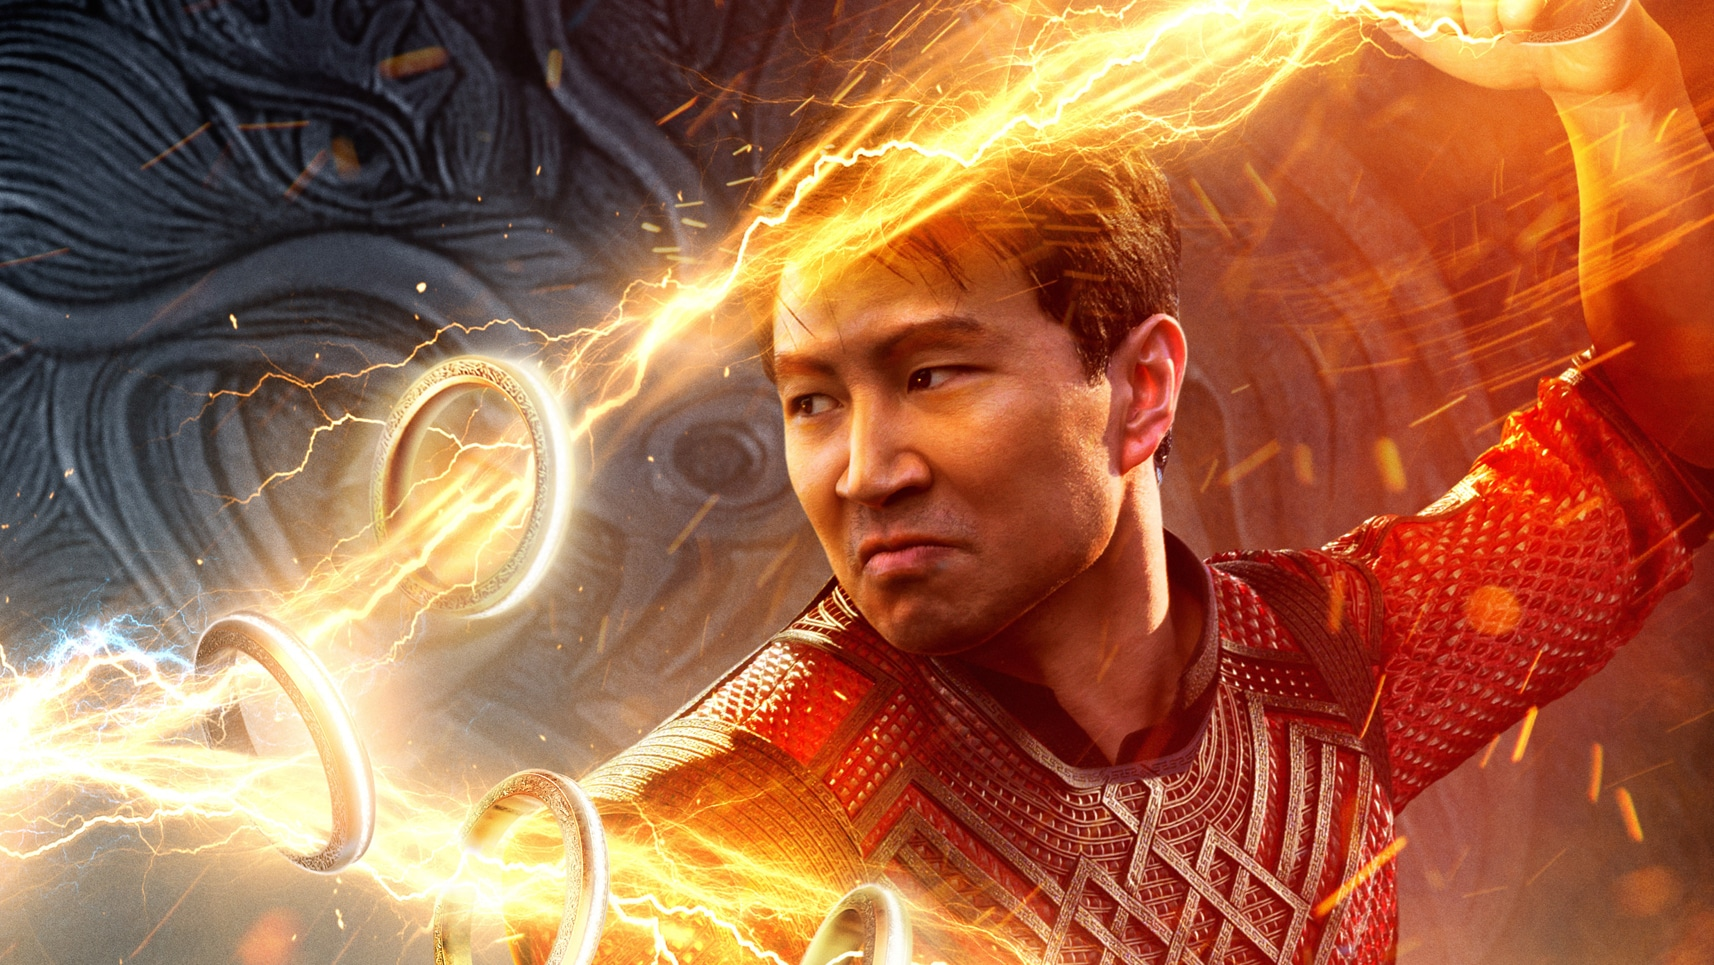 An Interview With Marvel Studios' Shang-Chi and the Legend of the Ten Rings Director Destin Daniel Cretton